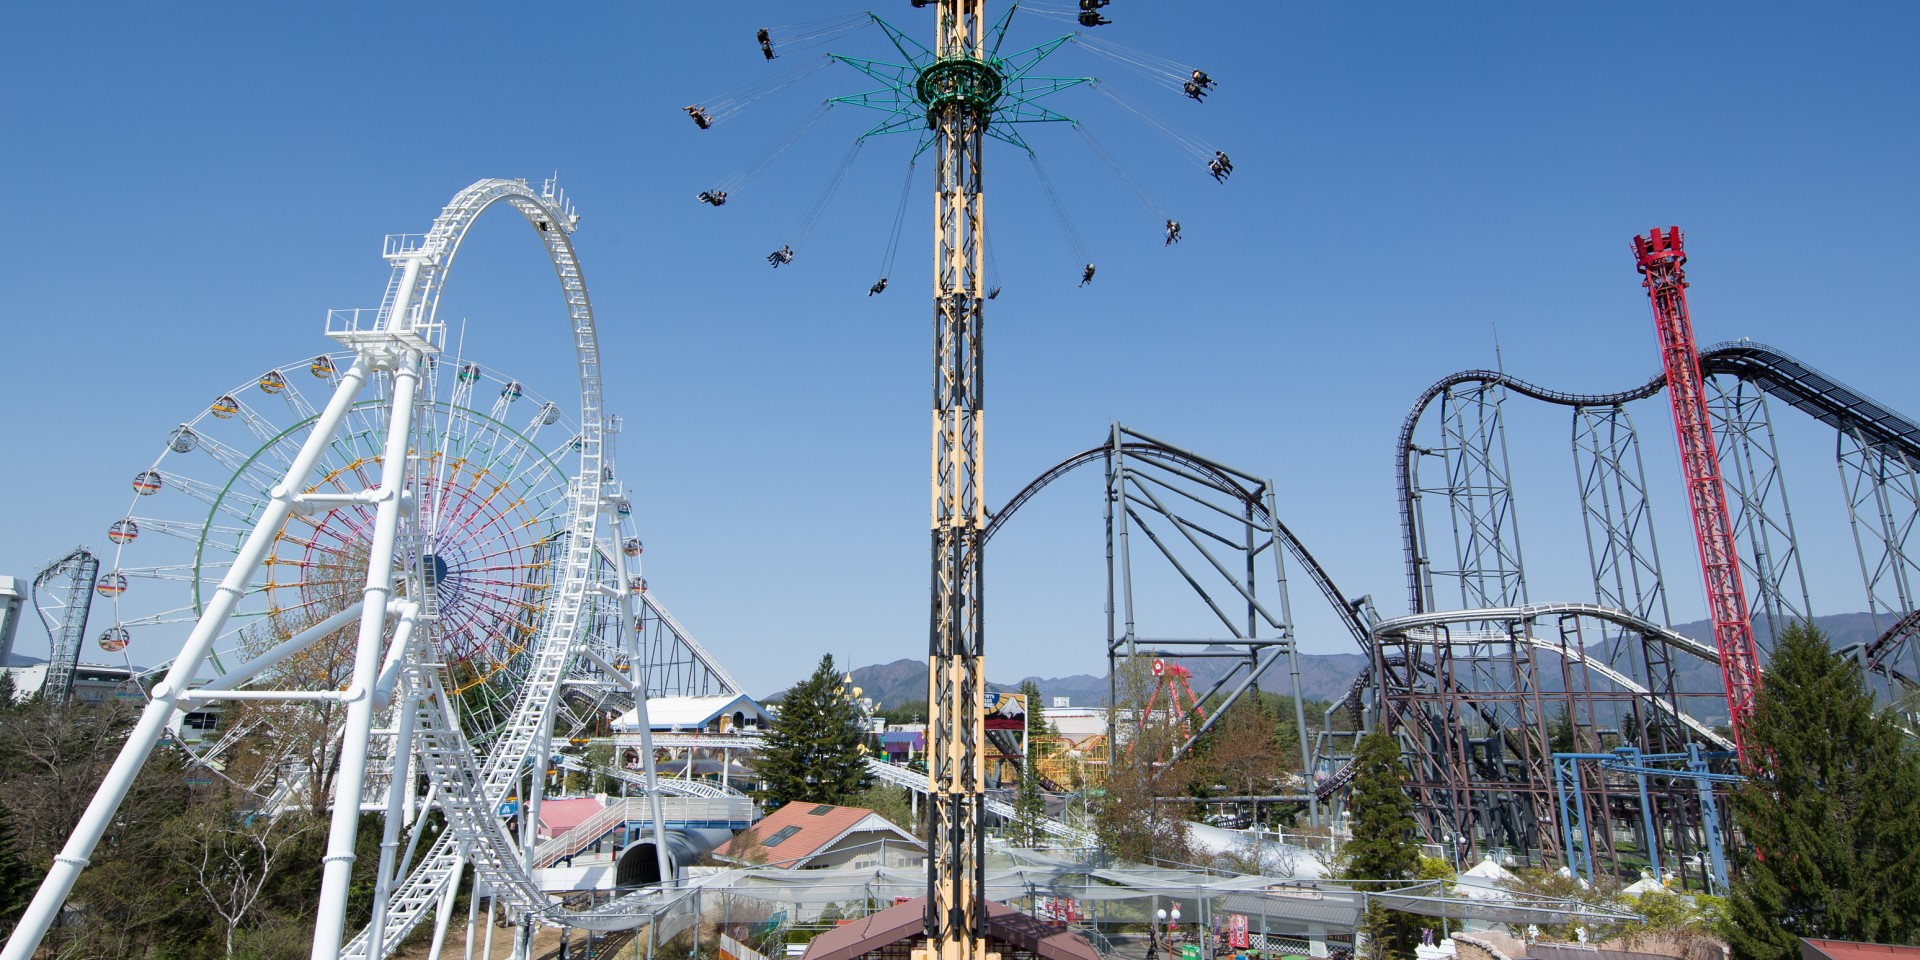 How to get to Fuji Q Highland